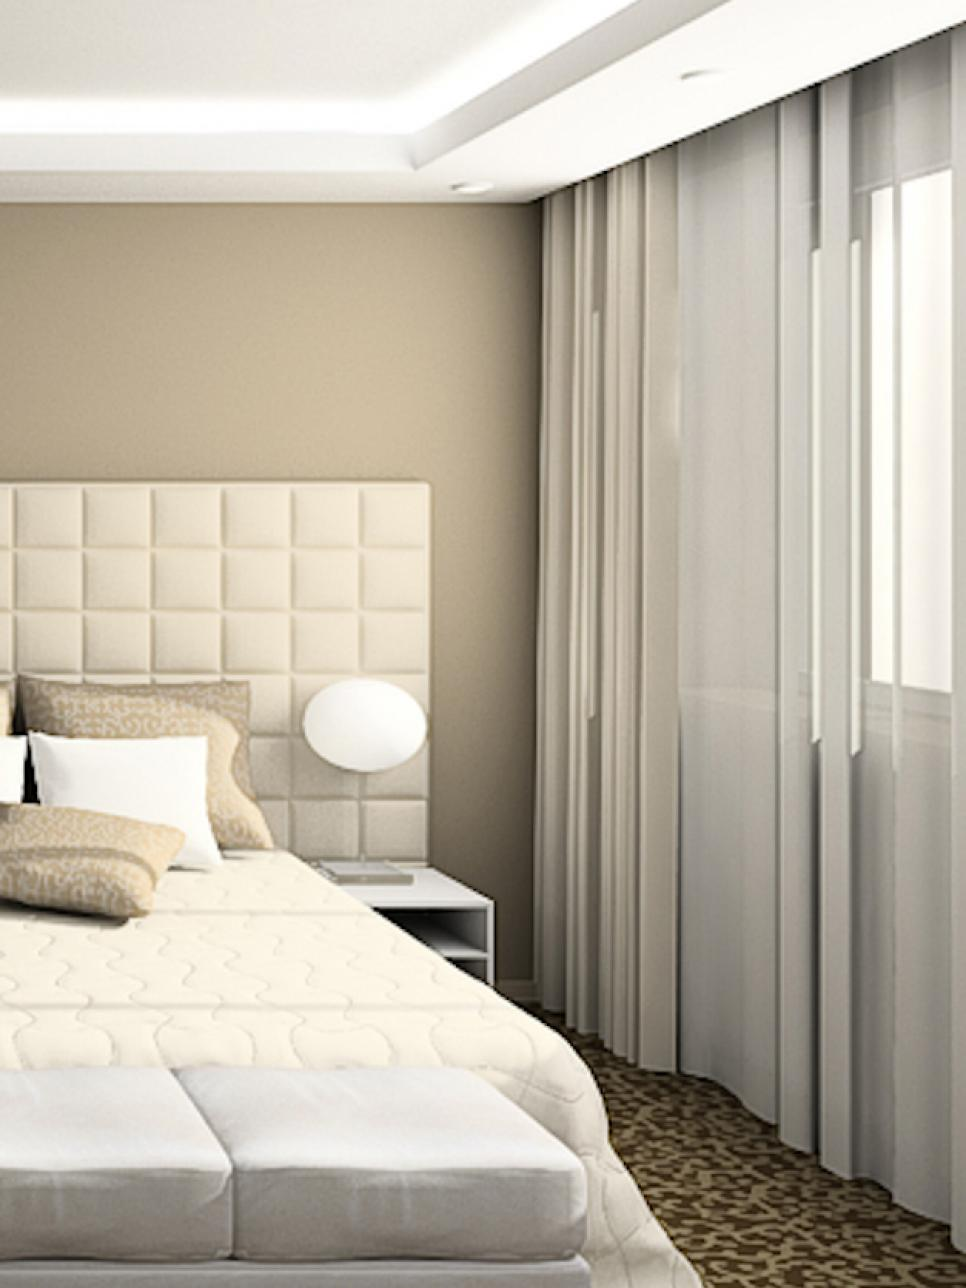 curtains for bedroom 7 beautiful window treatments for bedrooms   hgtv HGFOIRY